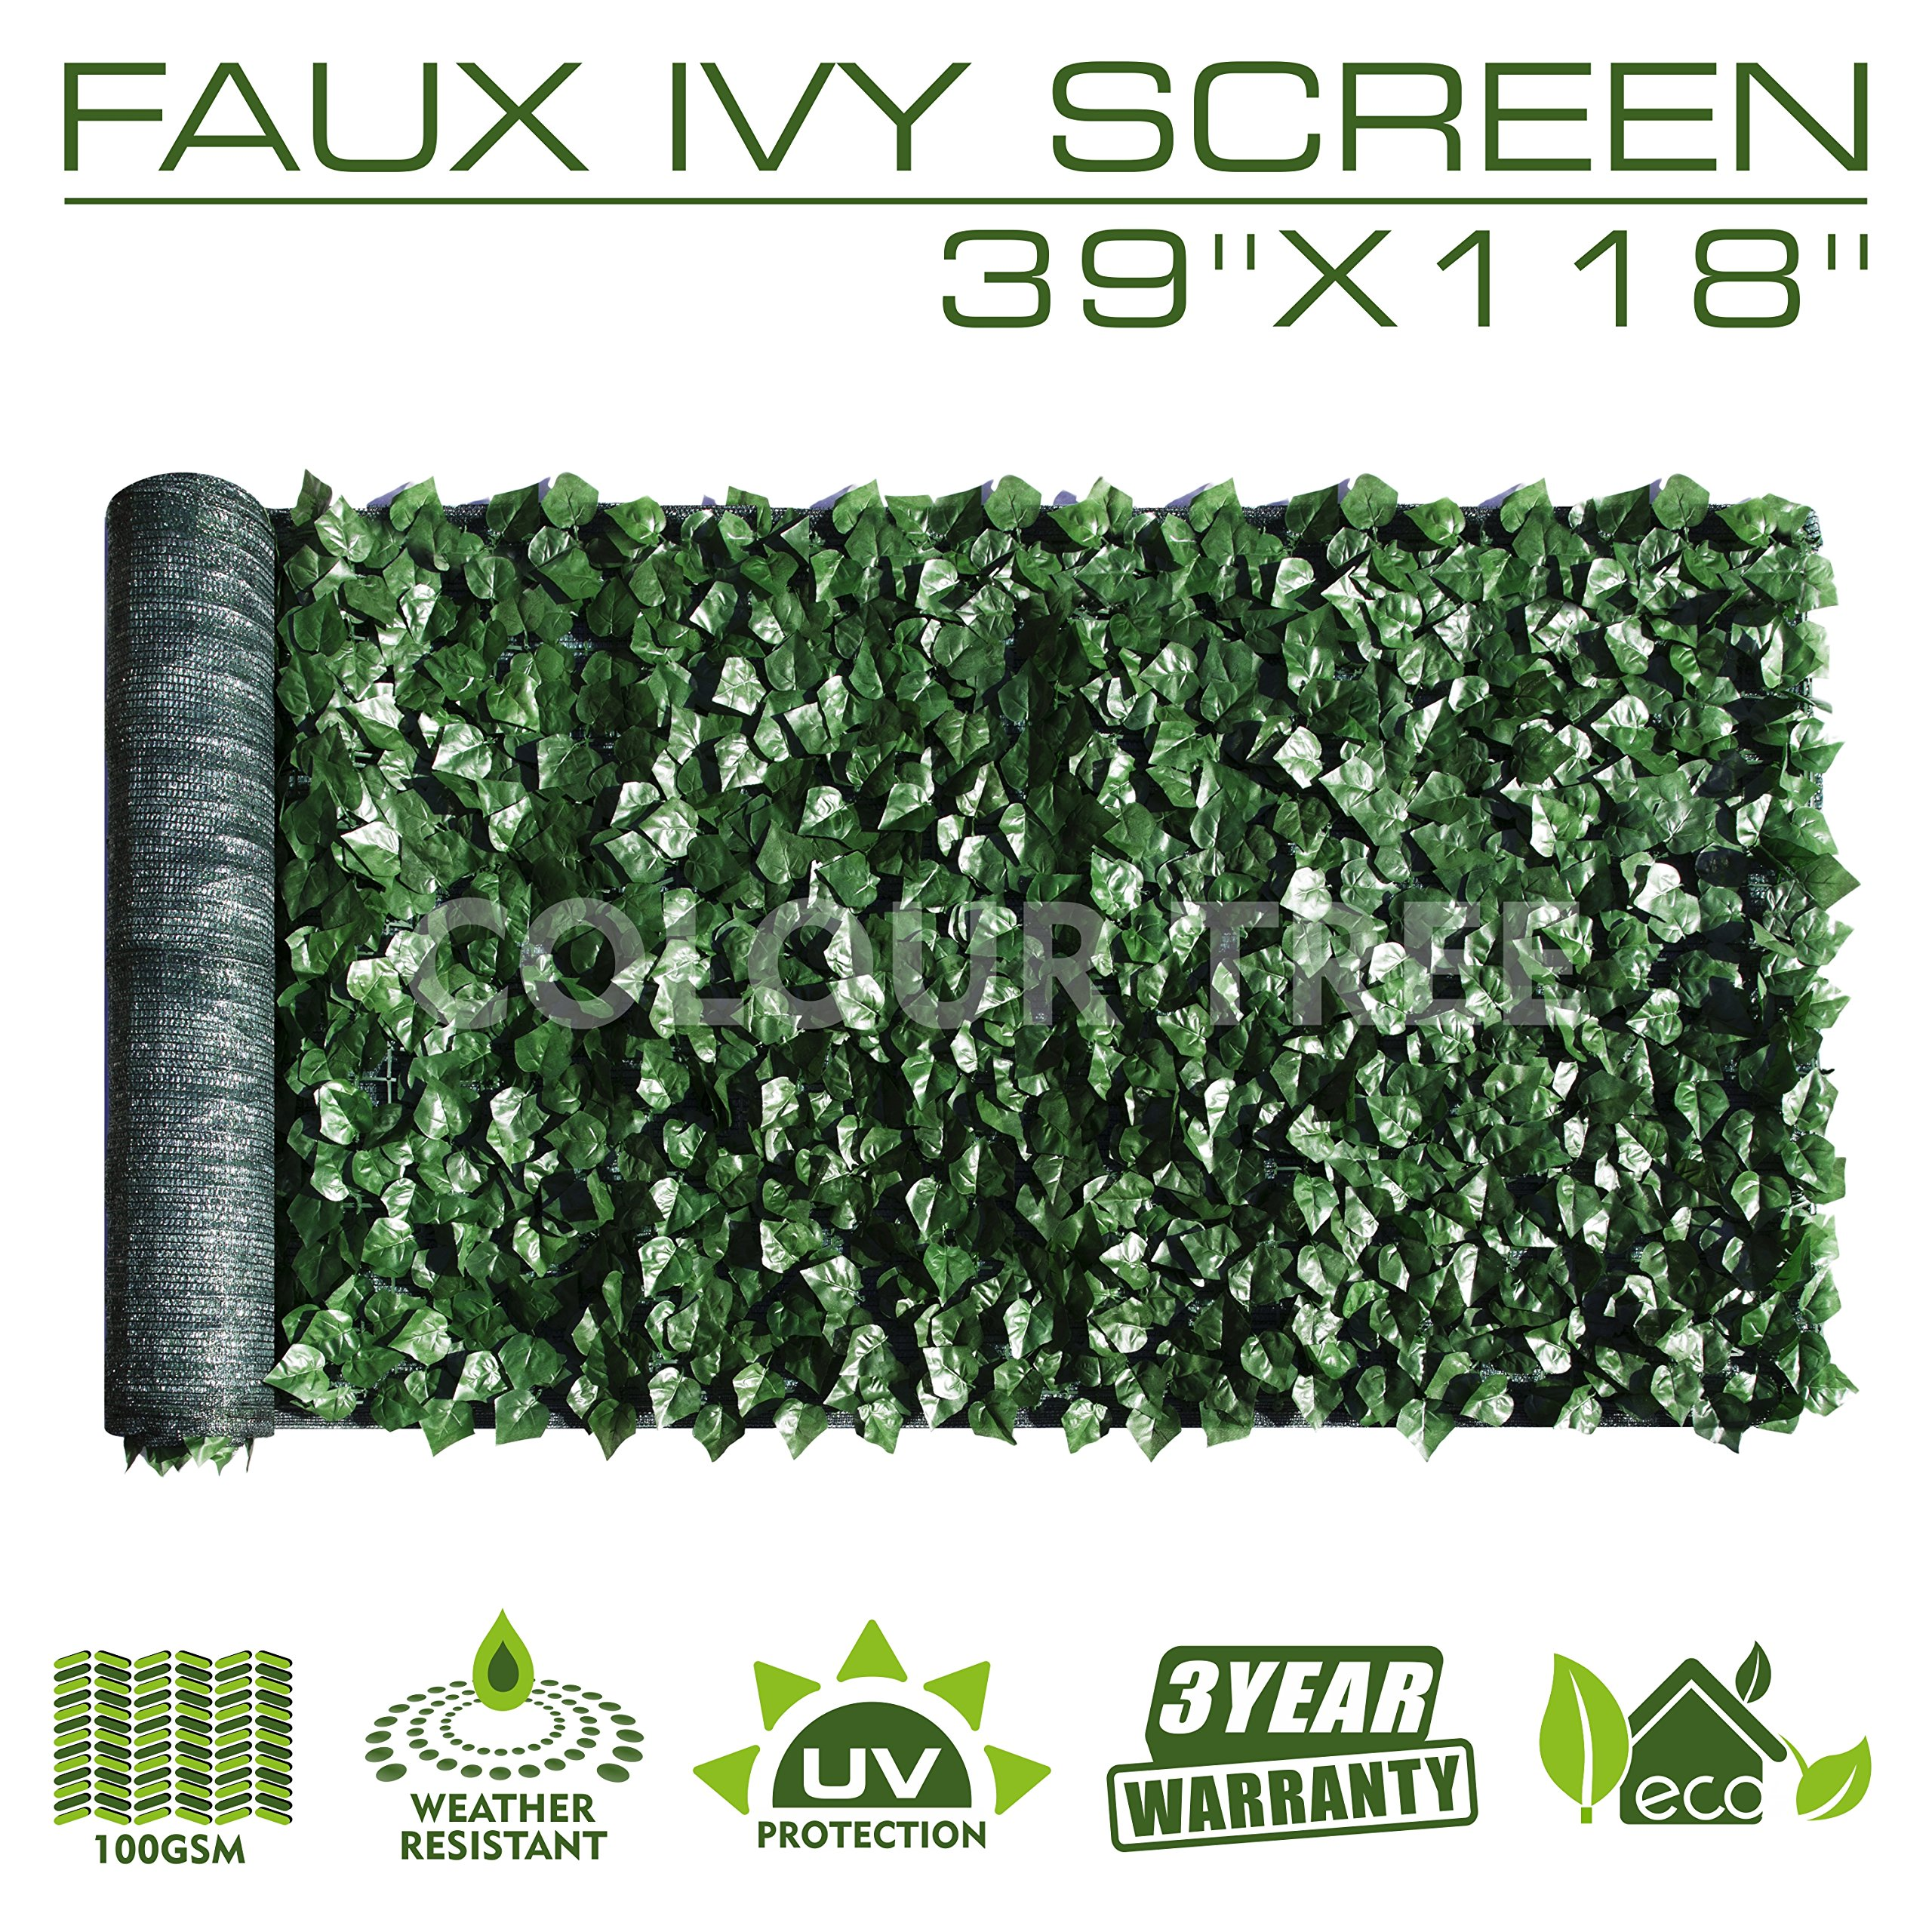 ColourTree Artificial Hedges Faux Ivy Leaves Fence Privacy Screen Panels Decorative Trellis - Mesh Backing - 3 Years Full Warranty (39'' x 118'')